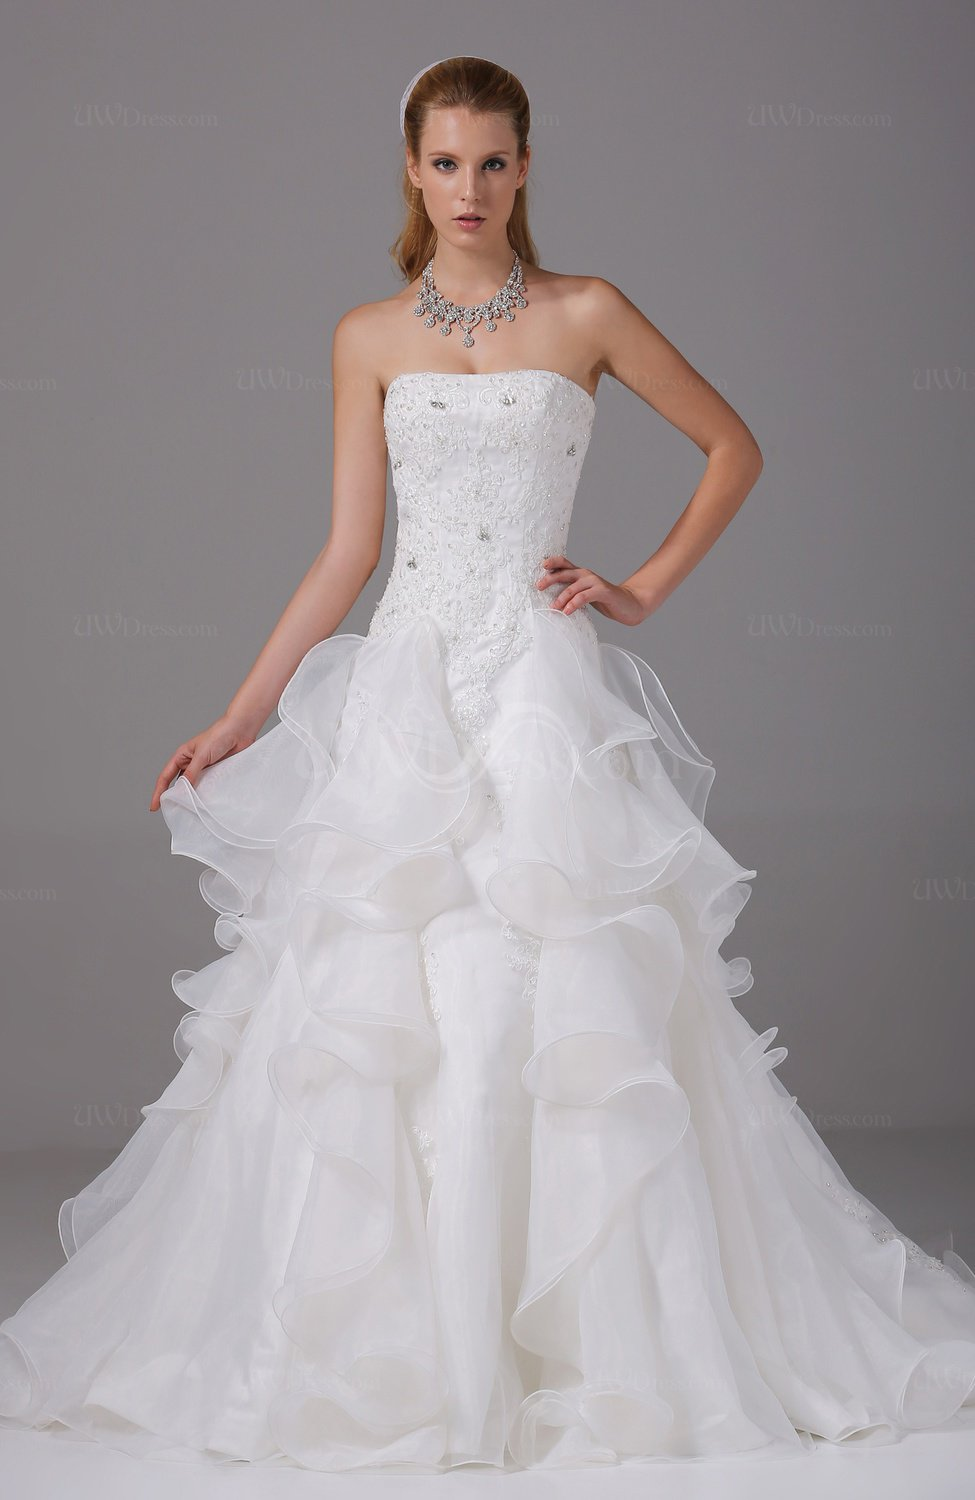 Gorgeous Outdoor Strapless Sleeveless Backless Organza ...Gorgeous Wedding Gowns 2012